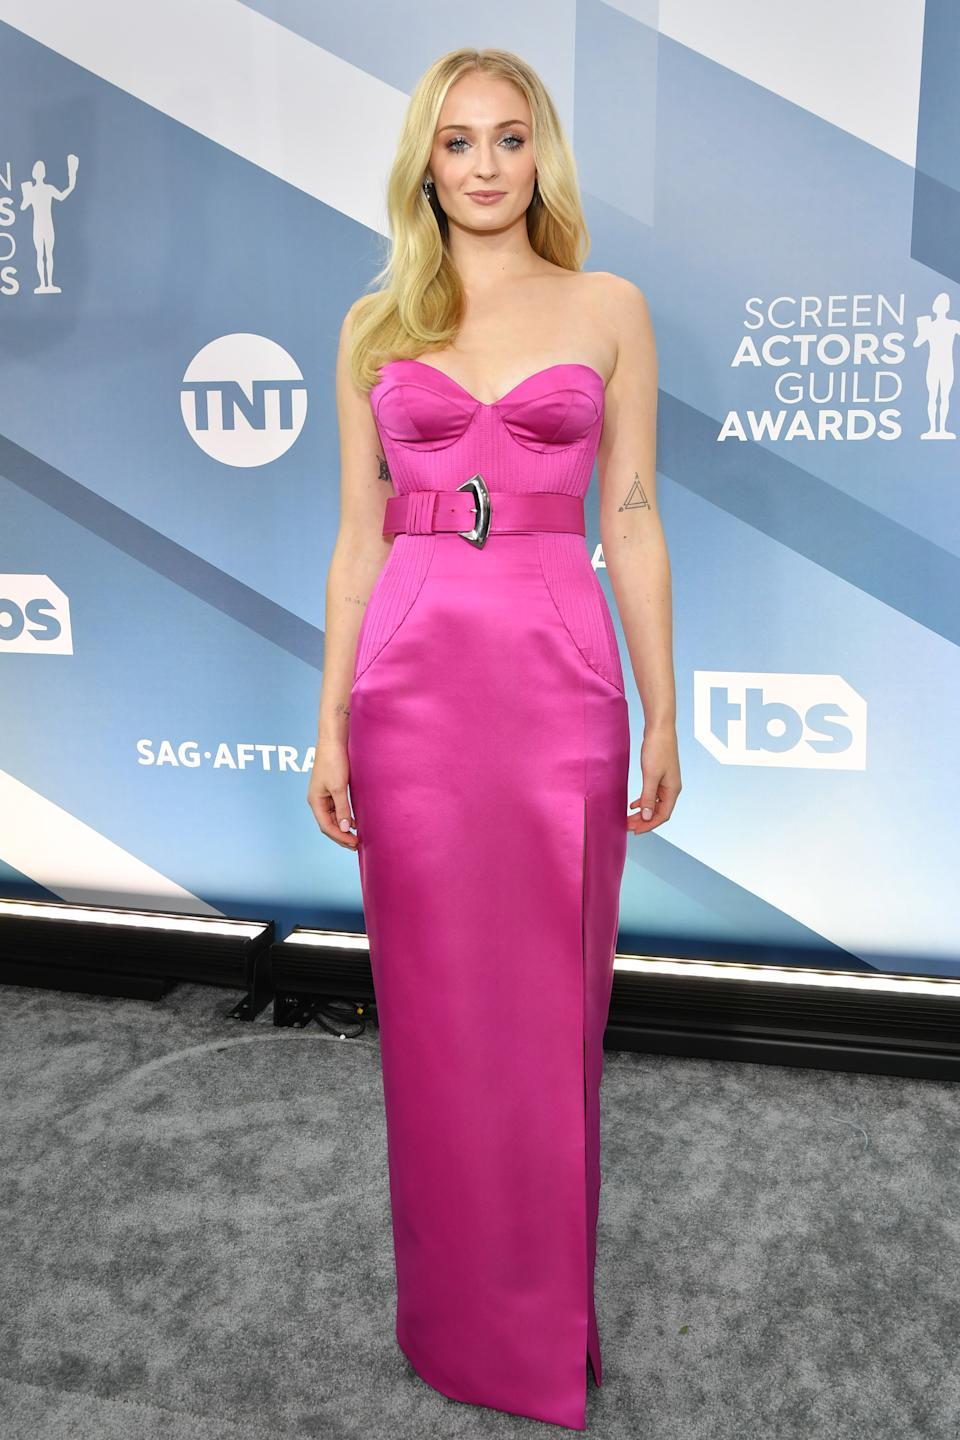 Turner turned up the heat in a hot pink belted look by Louis Vuitton.